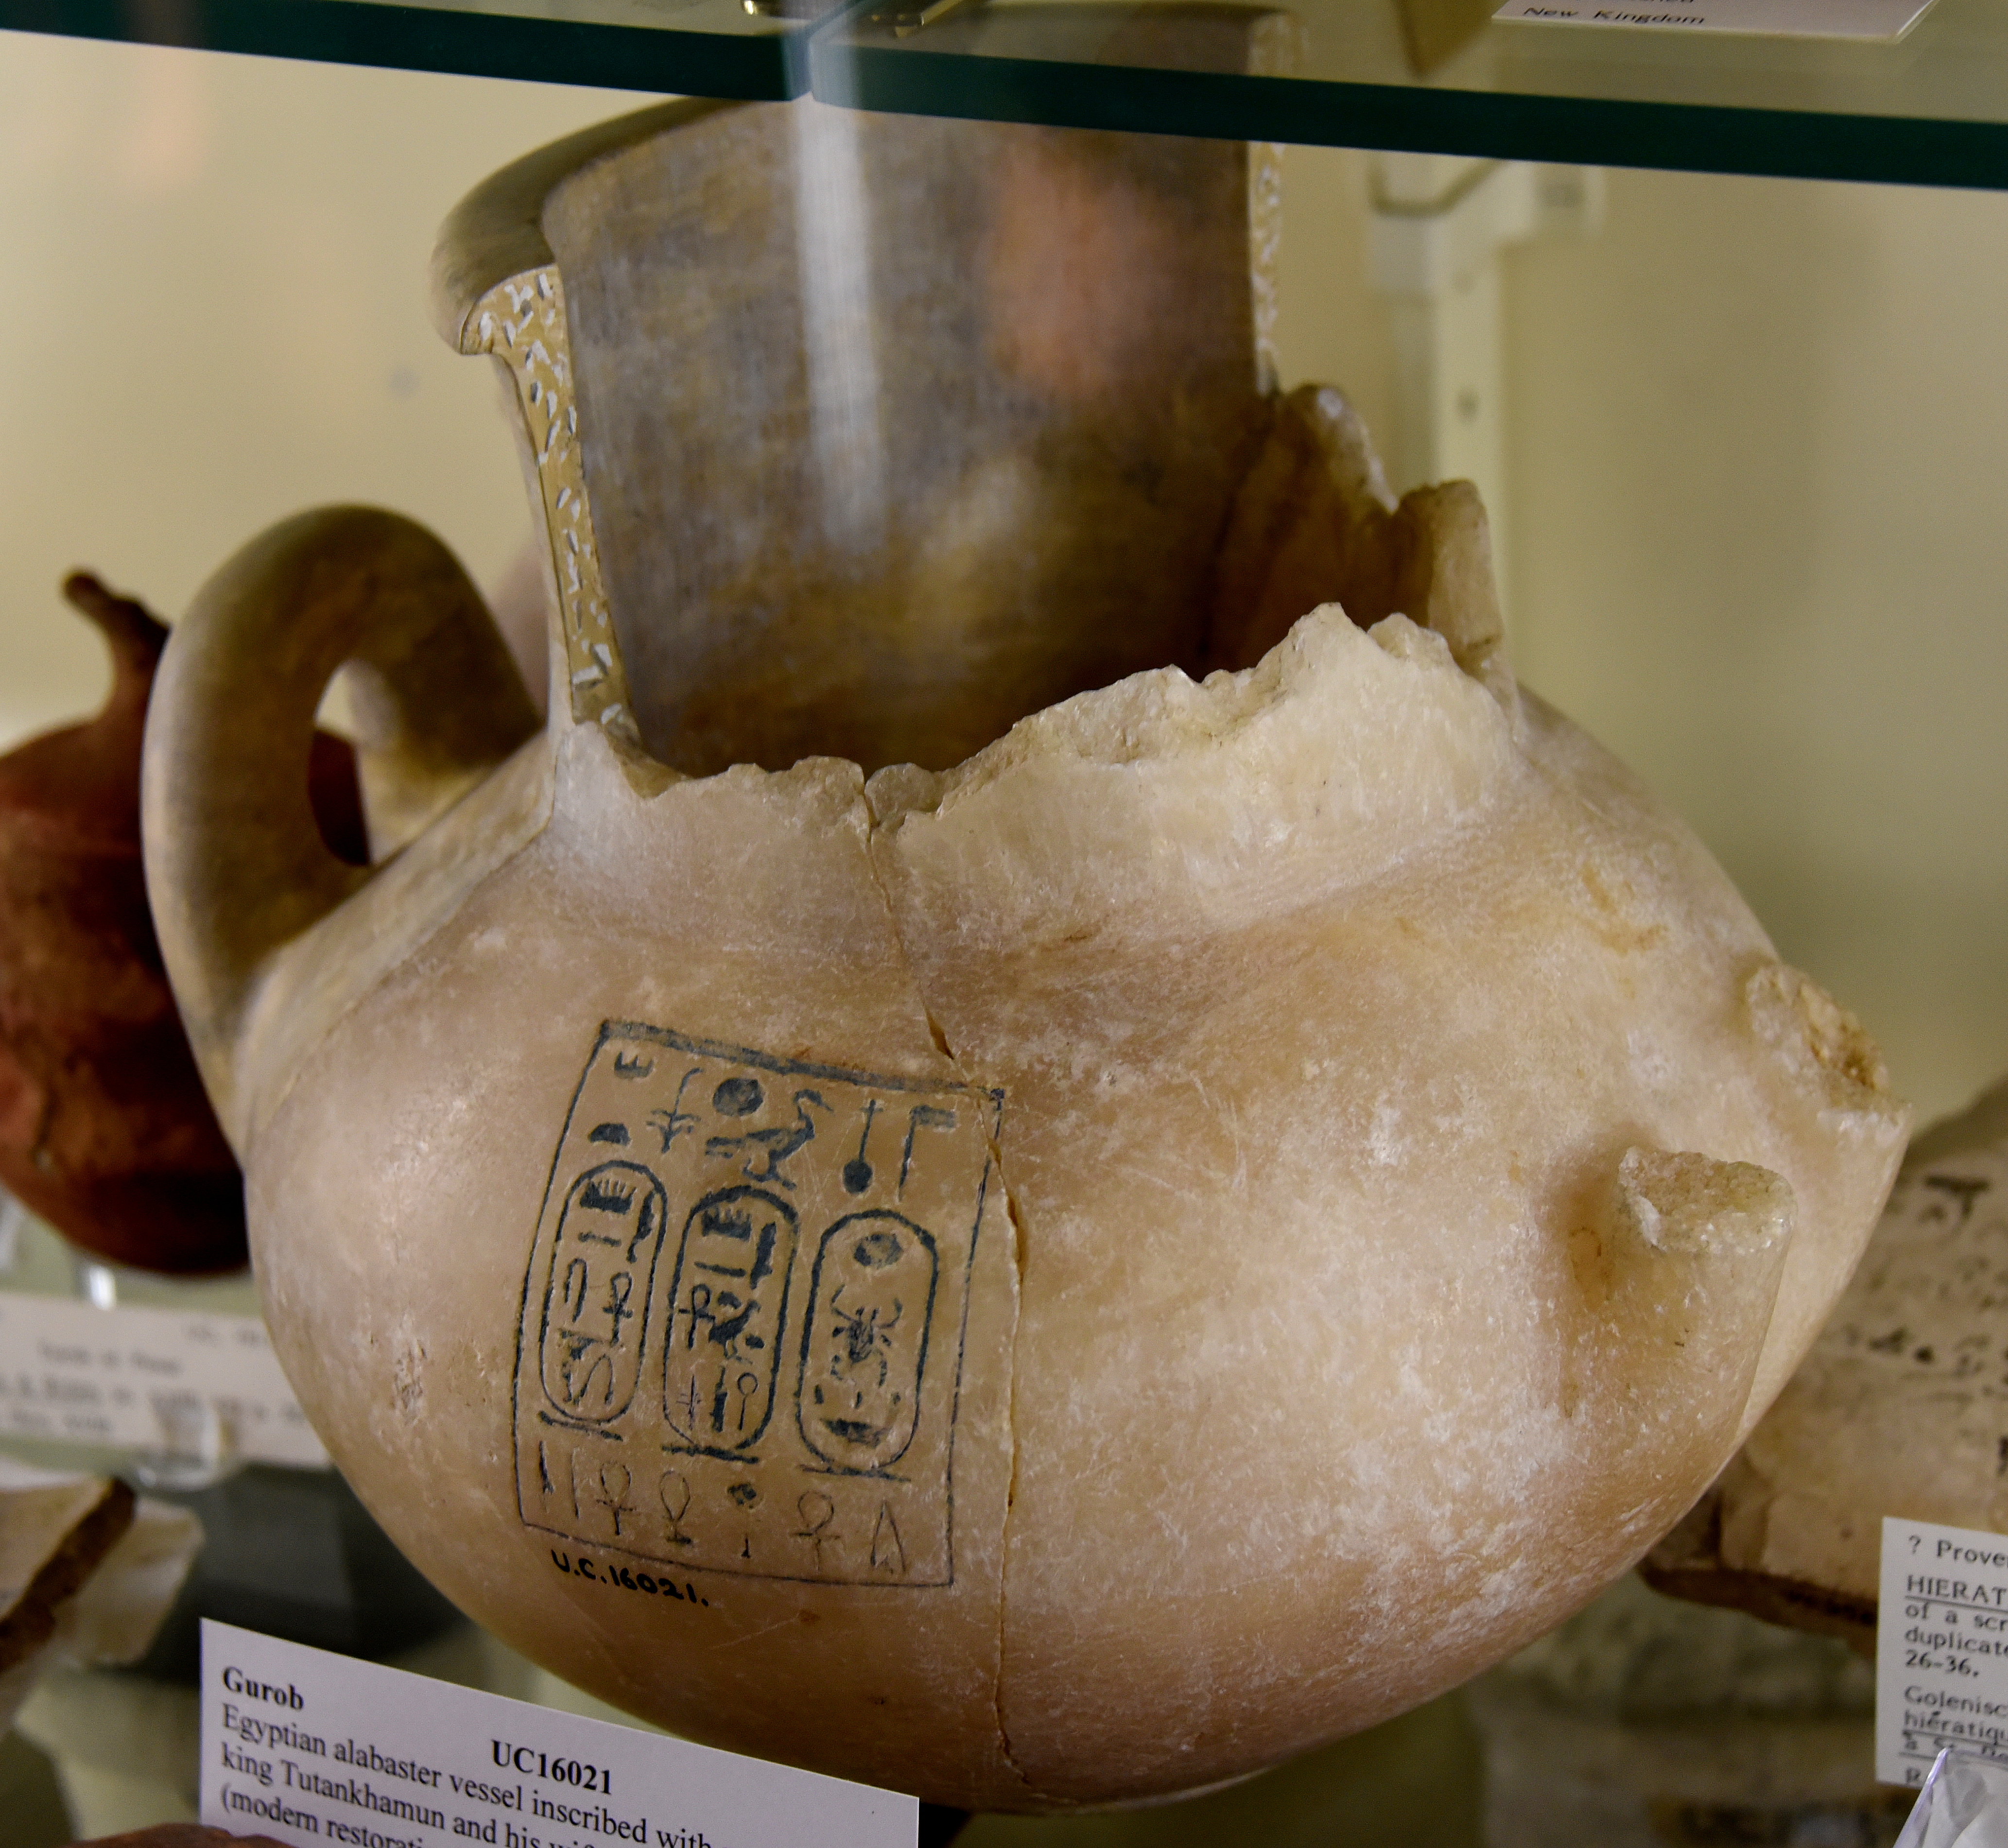 File:Partially restored alabaster jar with 2 handles. It bears the ...